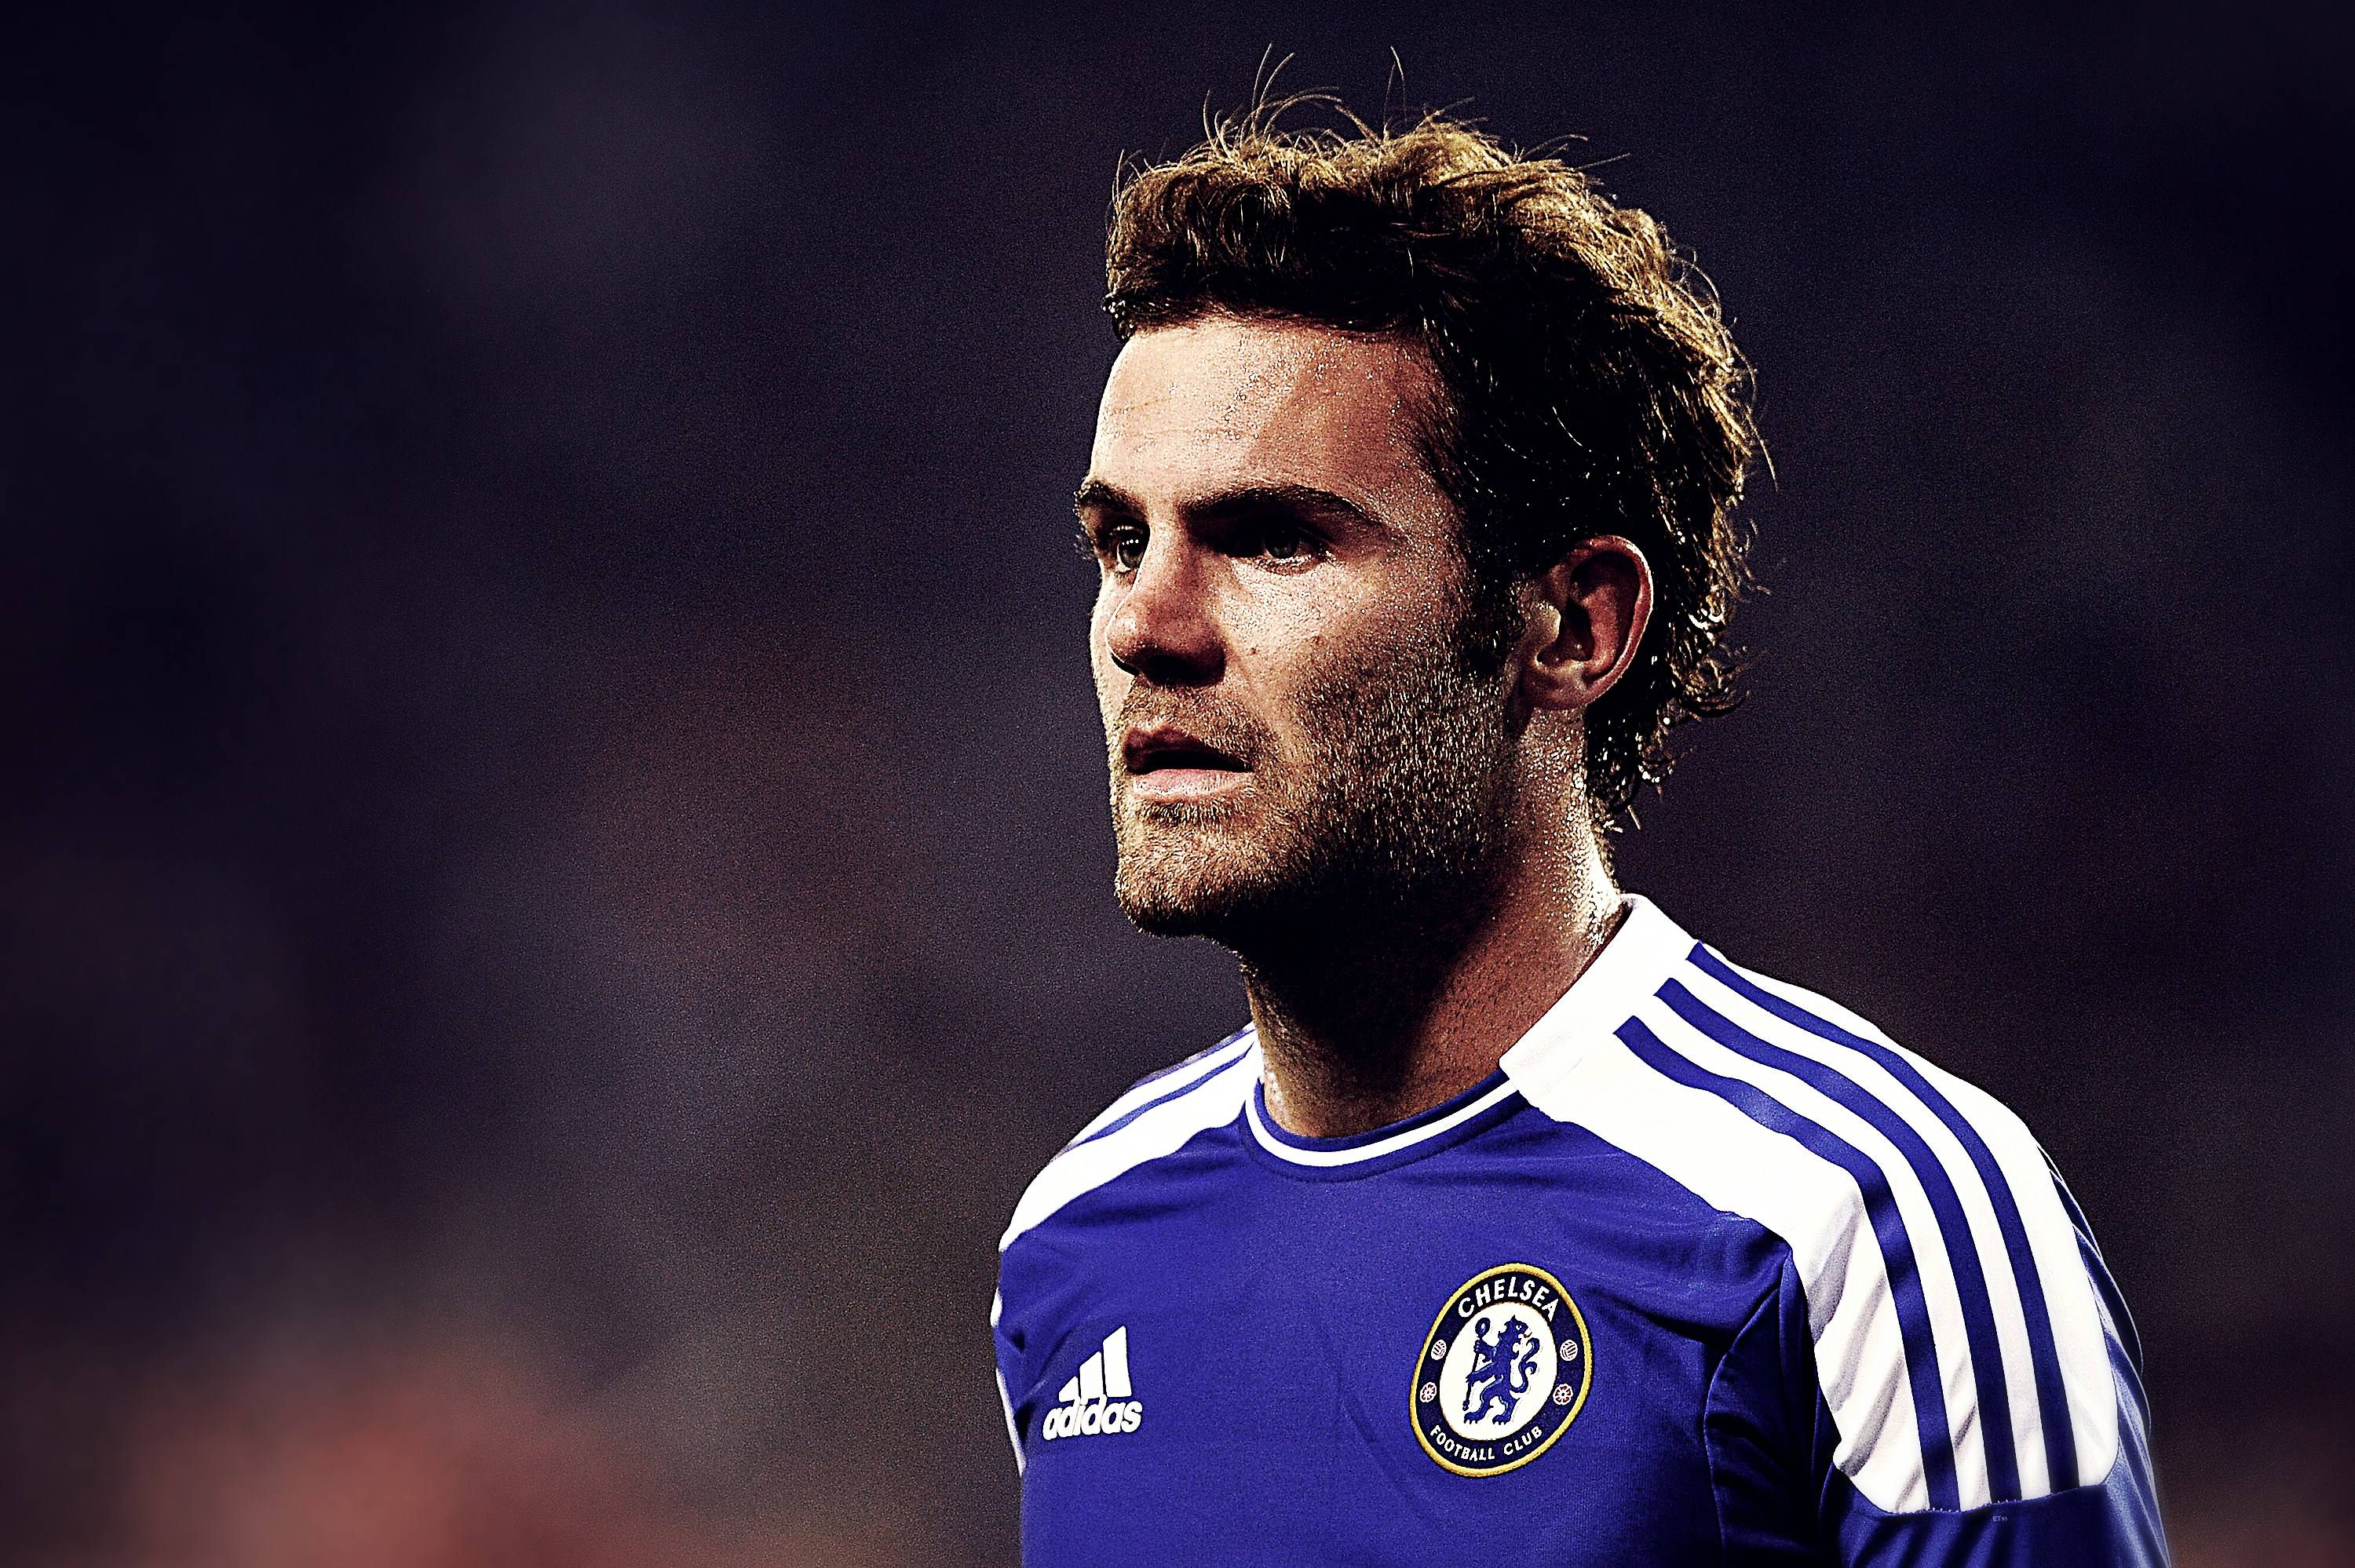 juan mata wallpaper 6.jpg Photos 2 HD Wallpaper and Pictures